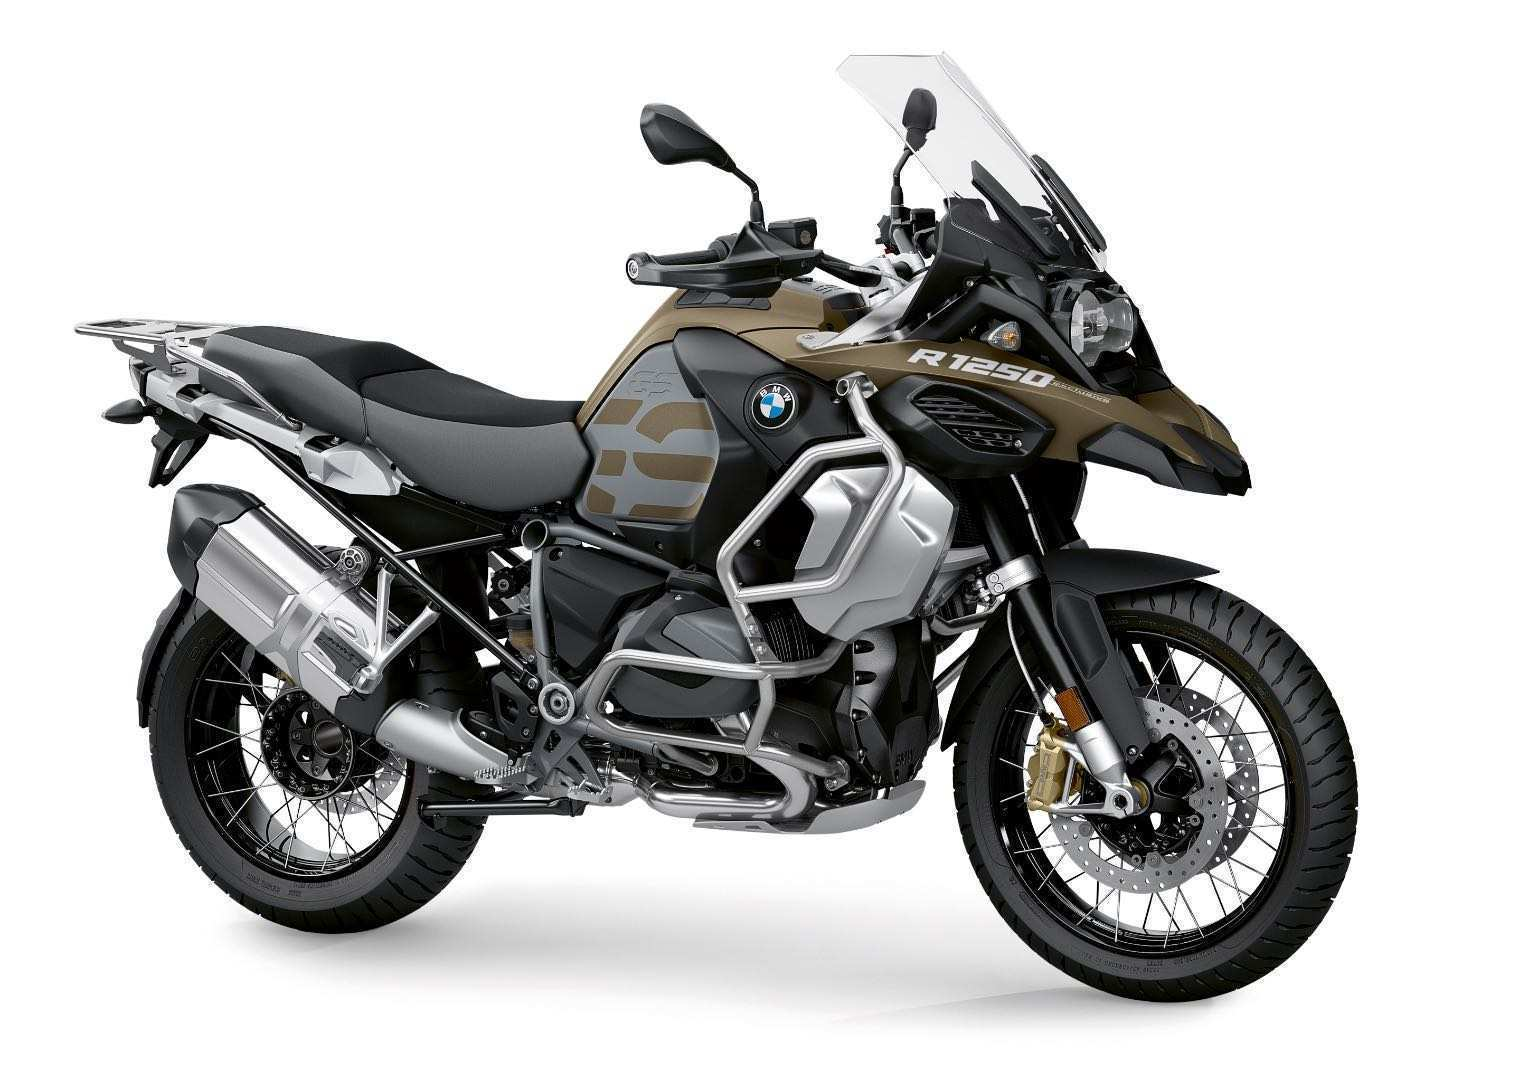 56 Concept of 2019 Bmw Gs Adventure Pricing for 2019 Bmw Gs Adventure